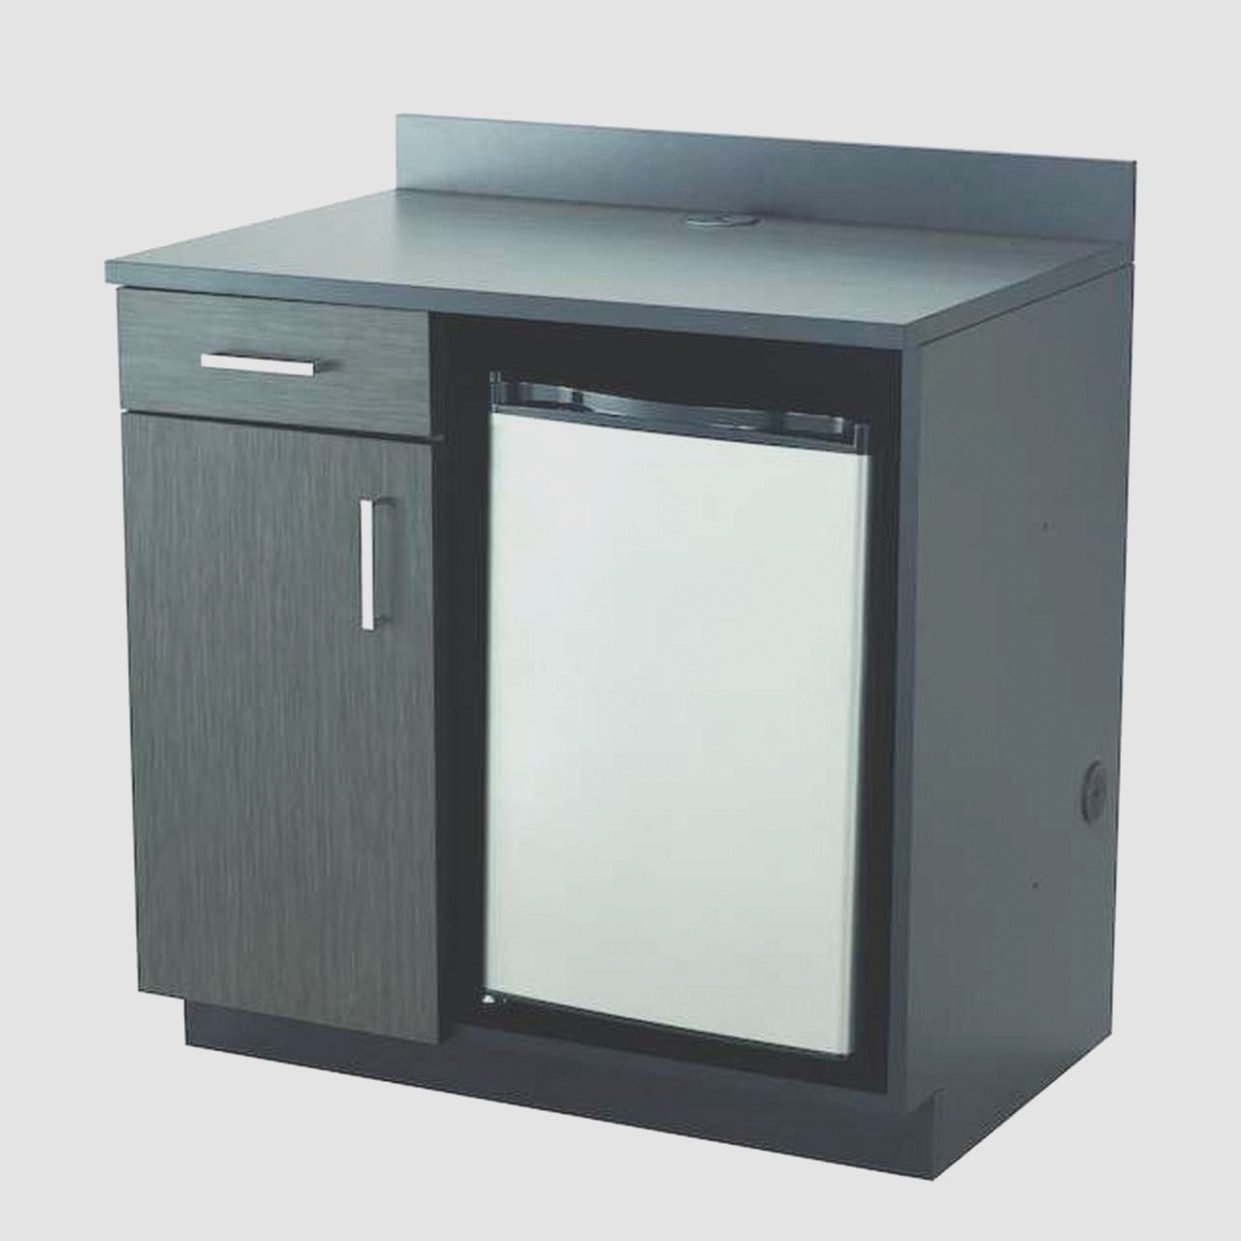 Mini Fridge Cabinet Furniture